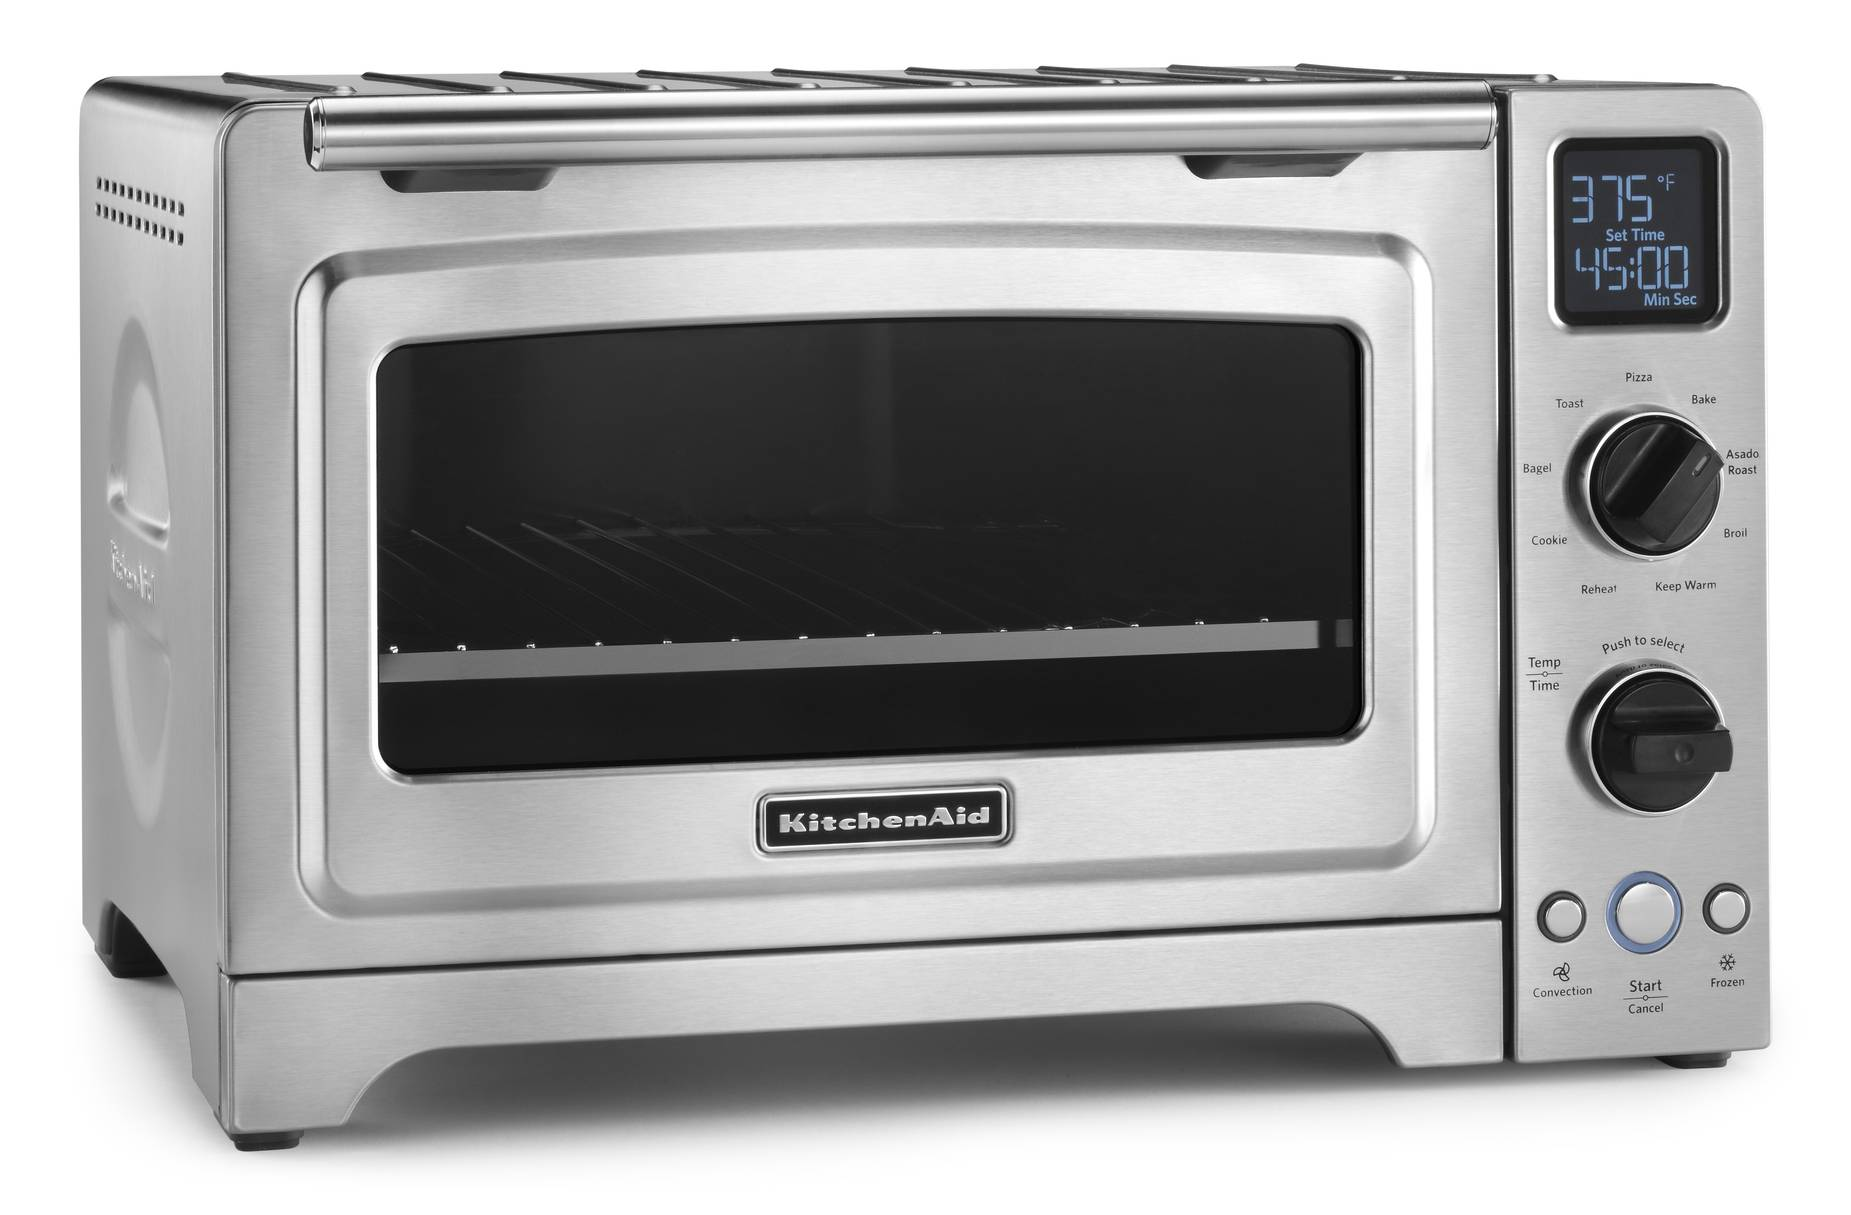 charming countertop cool sale walmar stainless appliance stylish element toaster heat elegant for ovens oven modern electric kitchen control on appliances walmart digital and slice cook convection cheap with